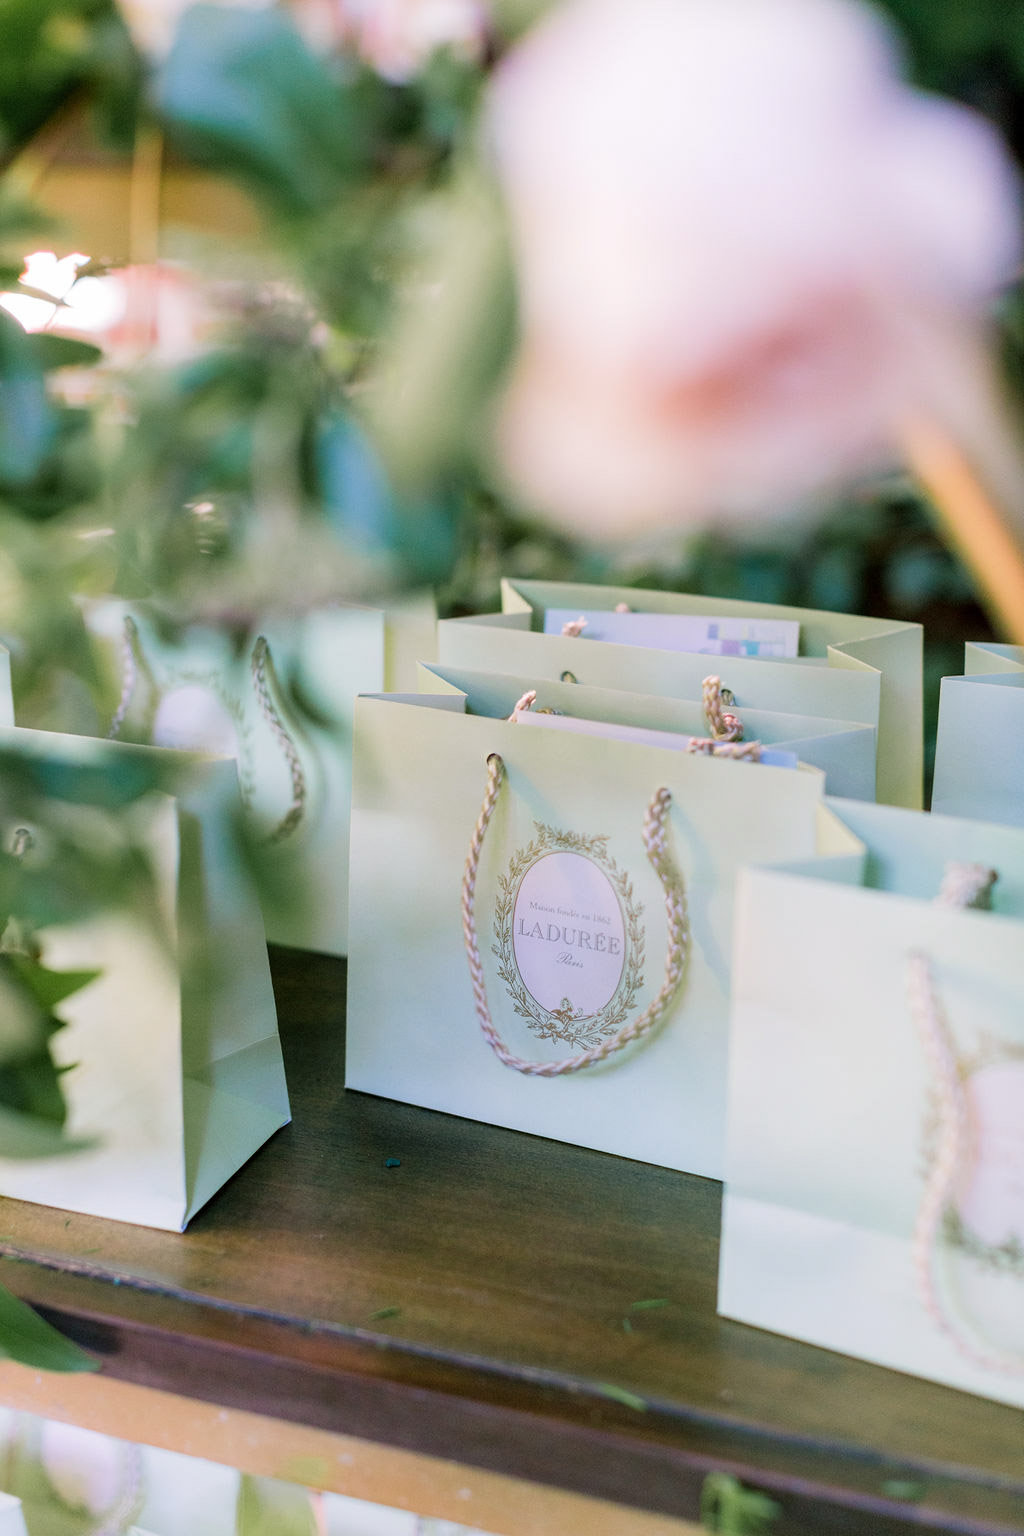 La Duree party favors at the Allison Webb Spring 2019 Bridal Fashion Event, Designed by Eddie Zaratsian, Photo by Jessica Grazia Mangia Photography